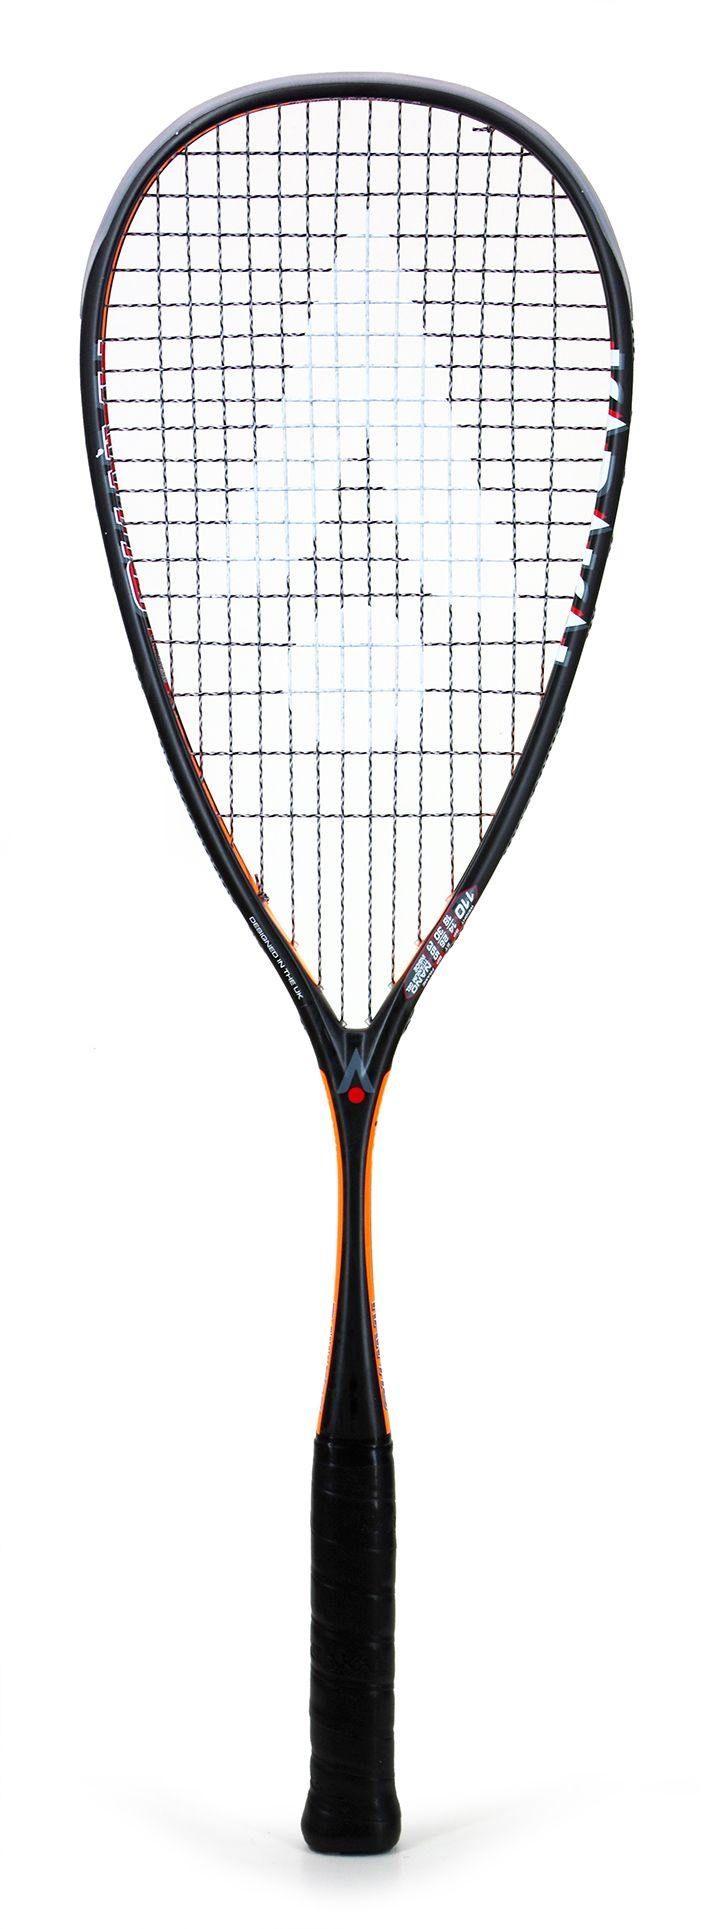 Karakal Raw 110 Squash Racket - FluxSports.co.uk